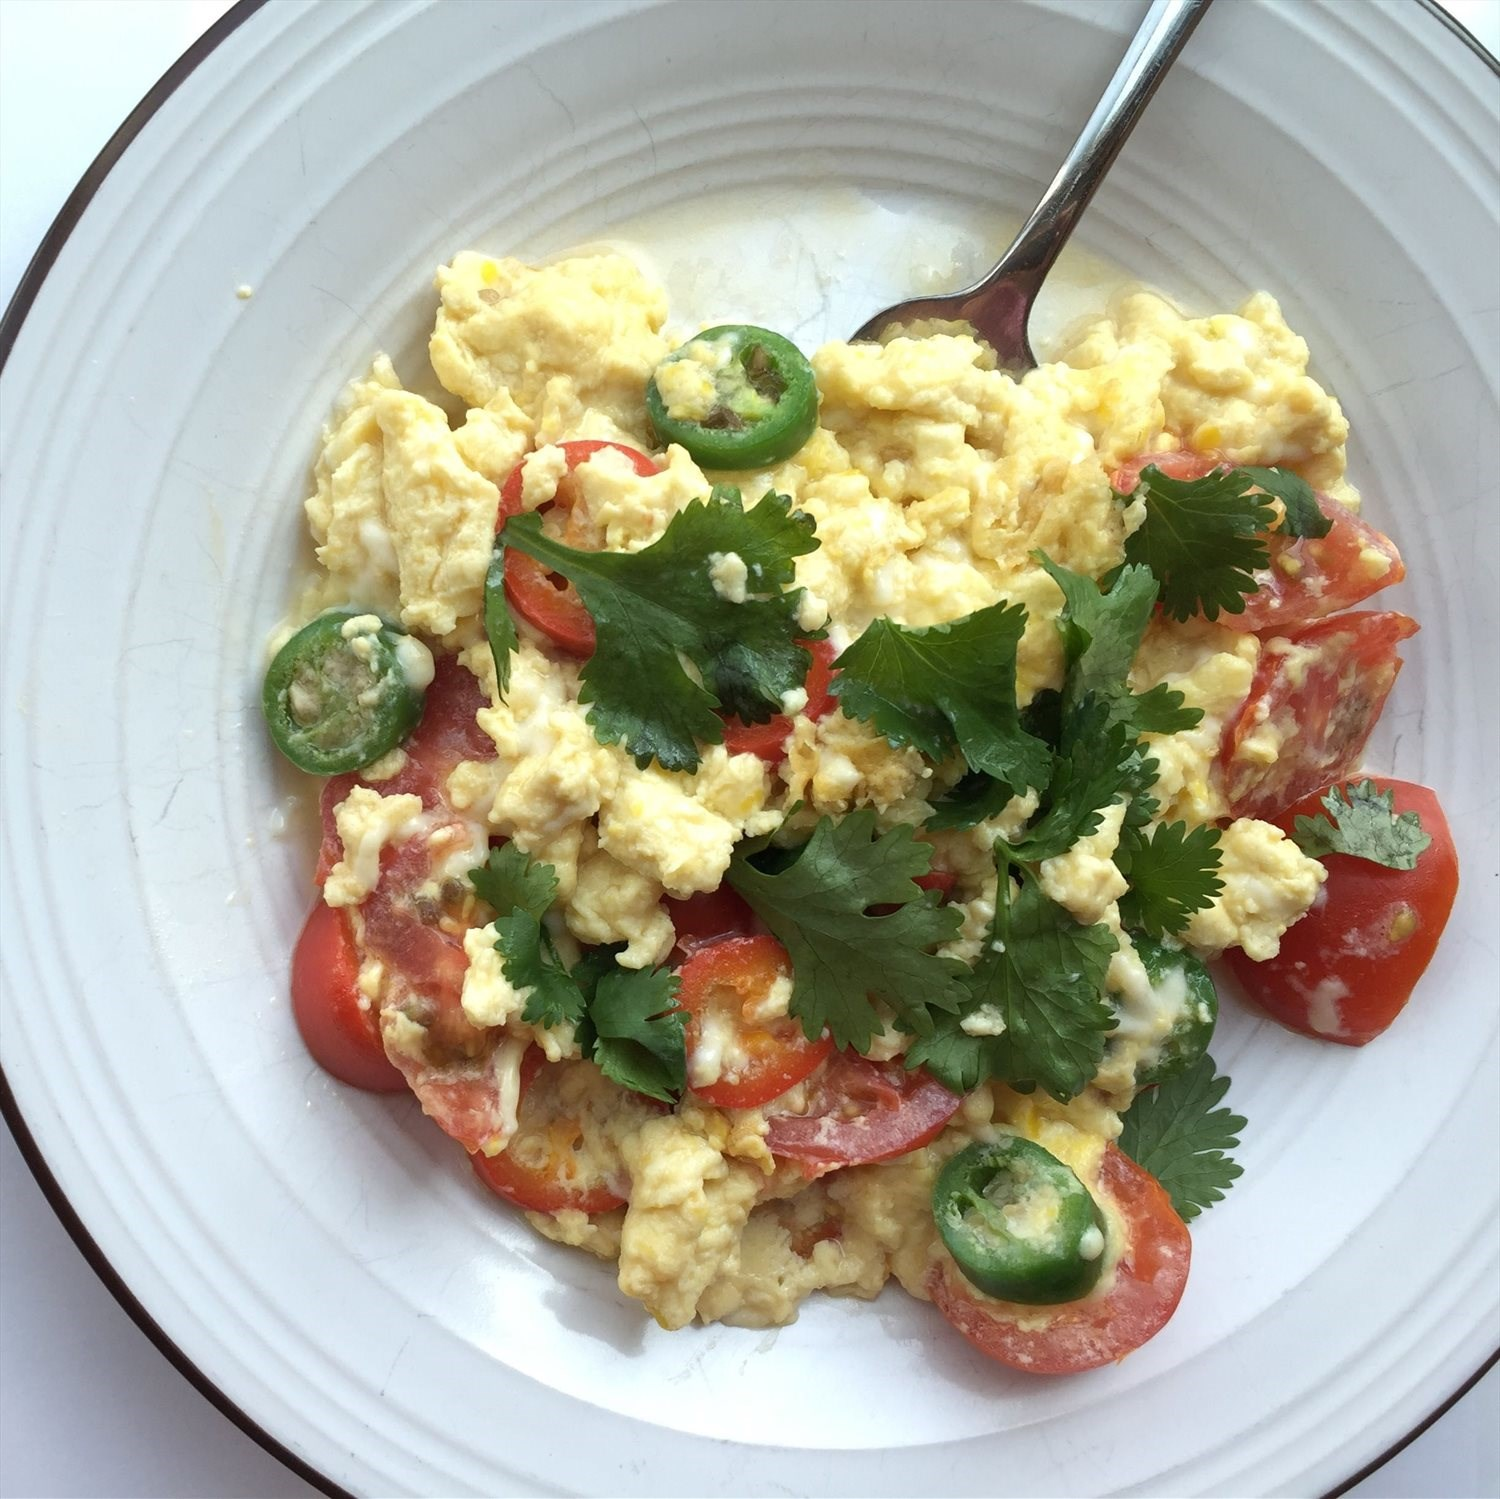 Tex-Mex Egg Scramble